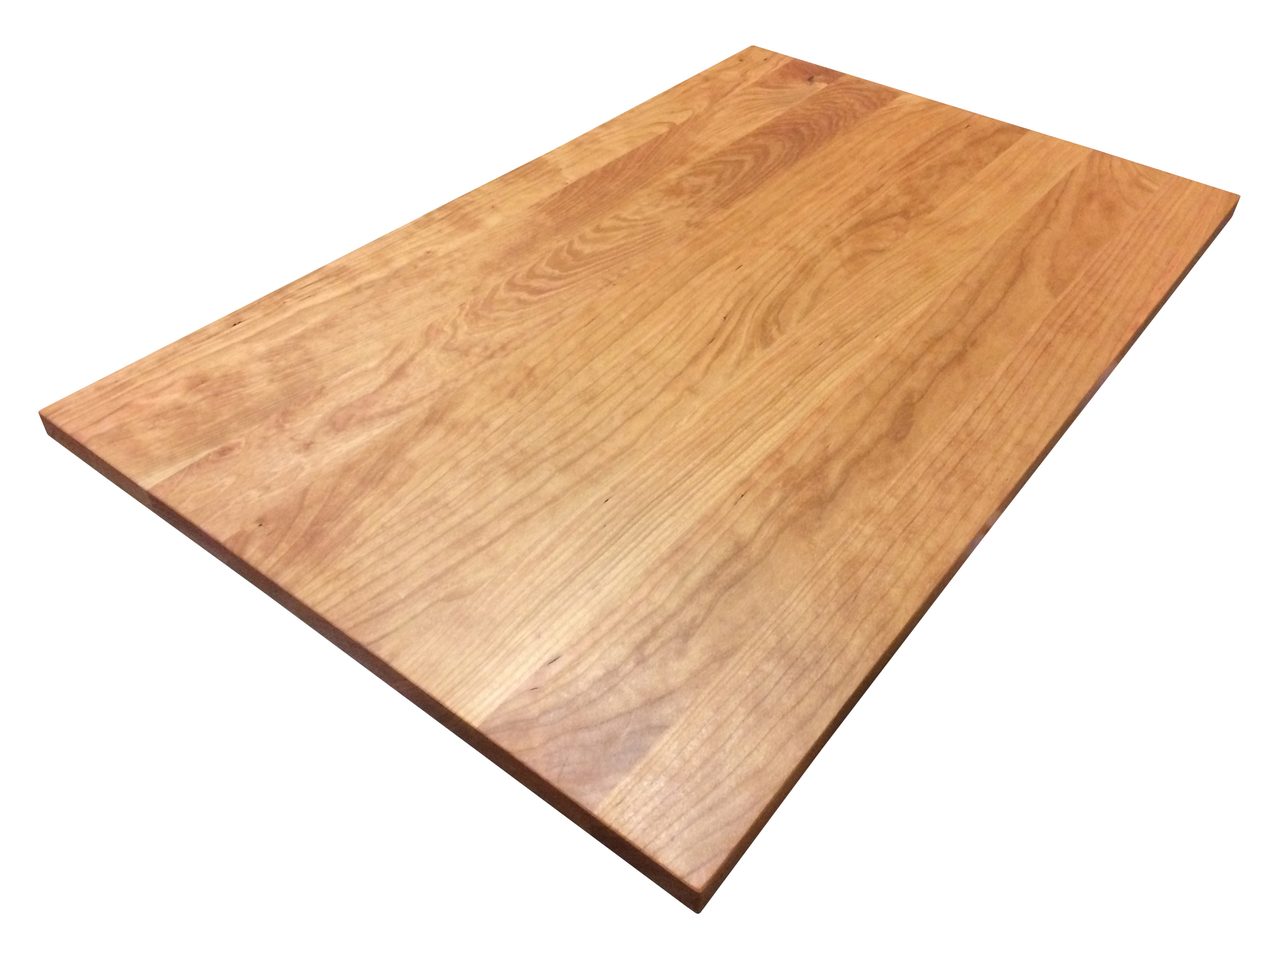 Armani Fine Woodworking Cherry Tabletop